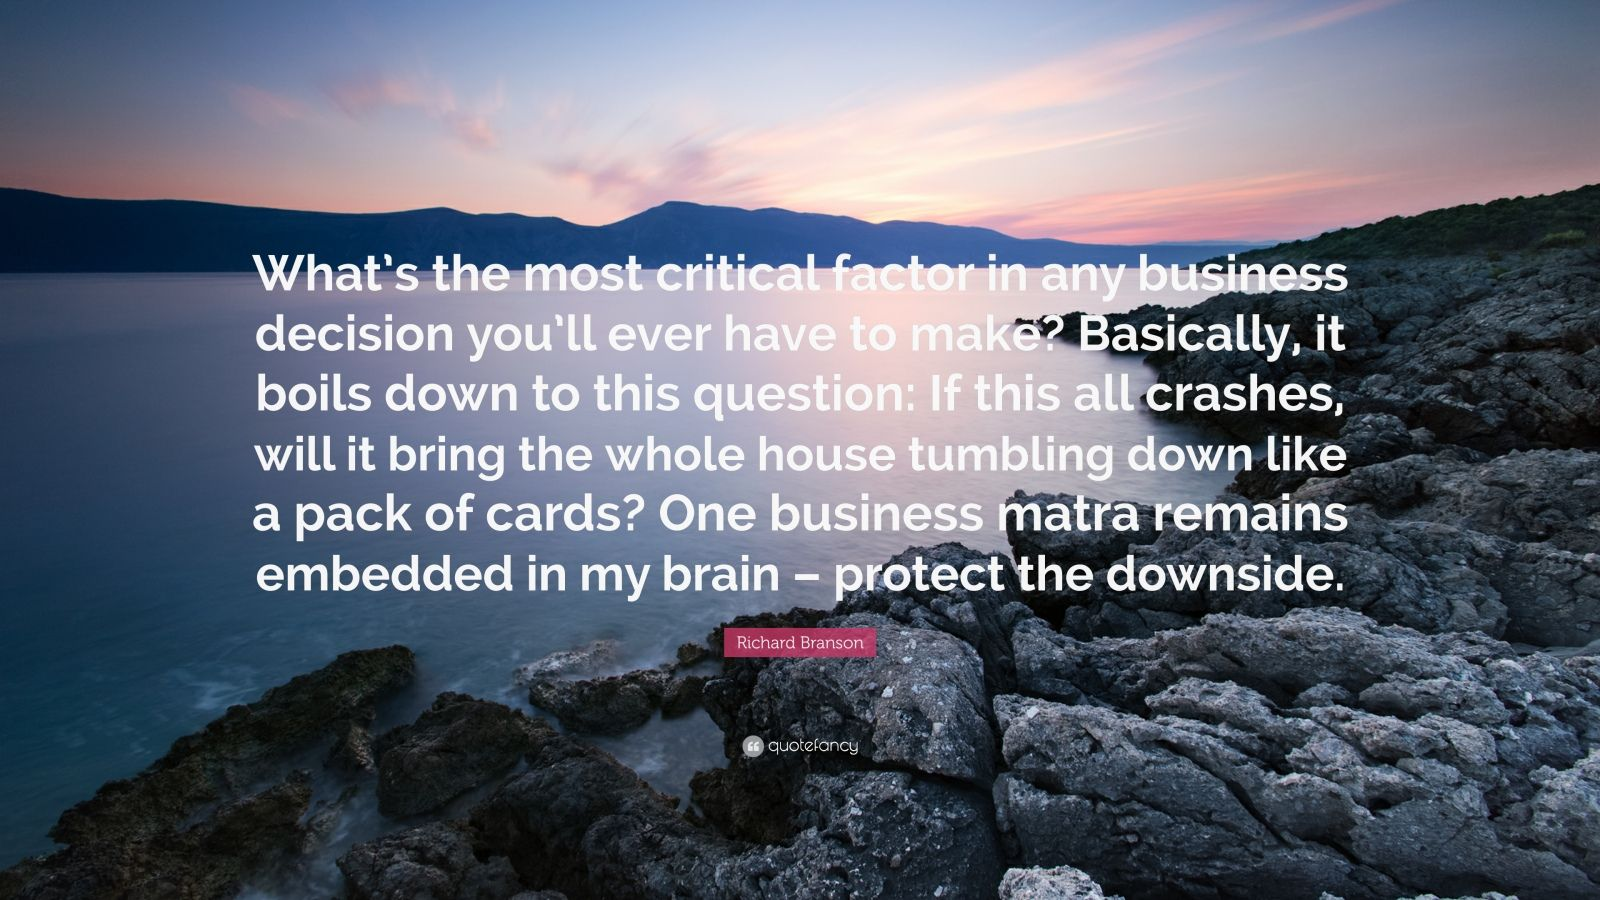 "Richard Branson Quote: ""What's the most critical factor in any business decision you'll ever have to make? Basically, it boils down to this question: If this all crashes, will it bring the whole house tumbling down like a pack of cards? One business matra remains embedded in my brain – protect the downside."""